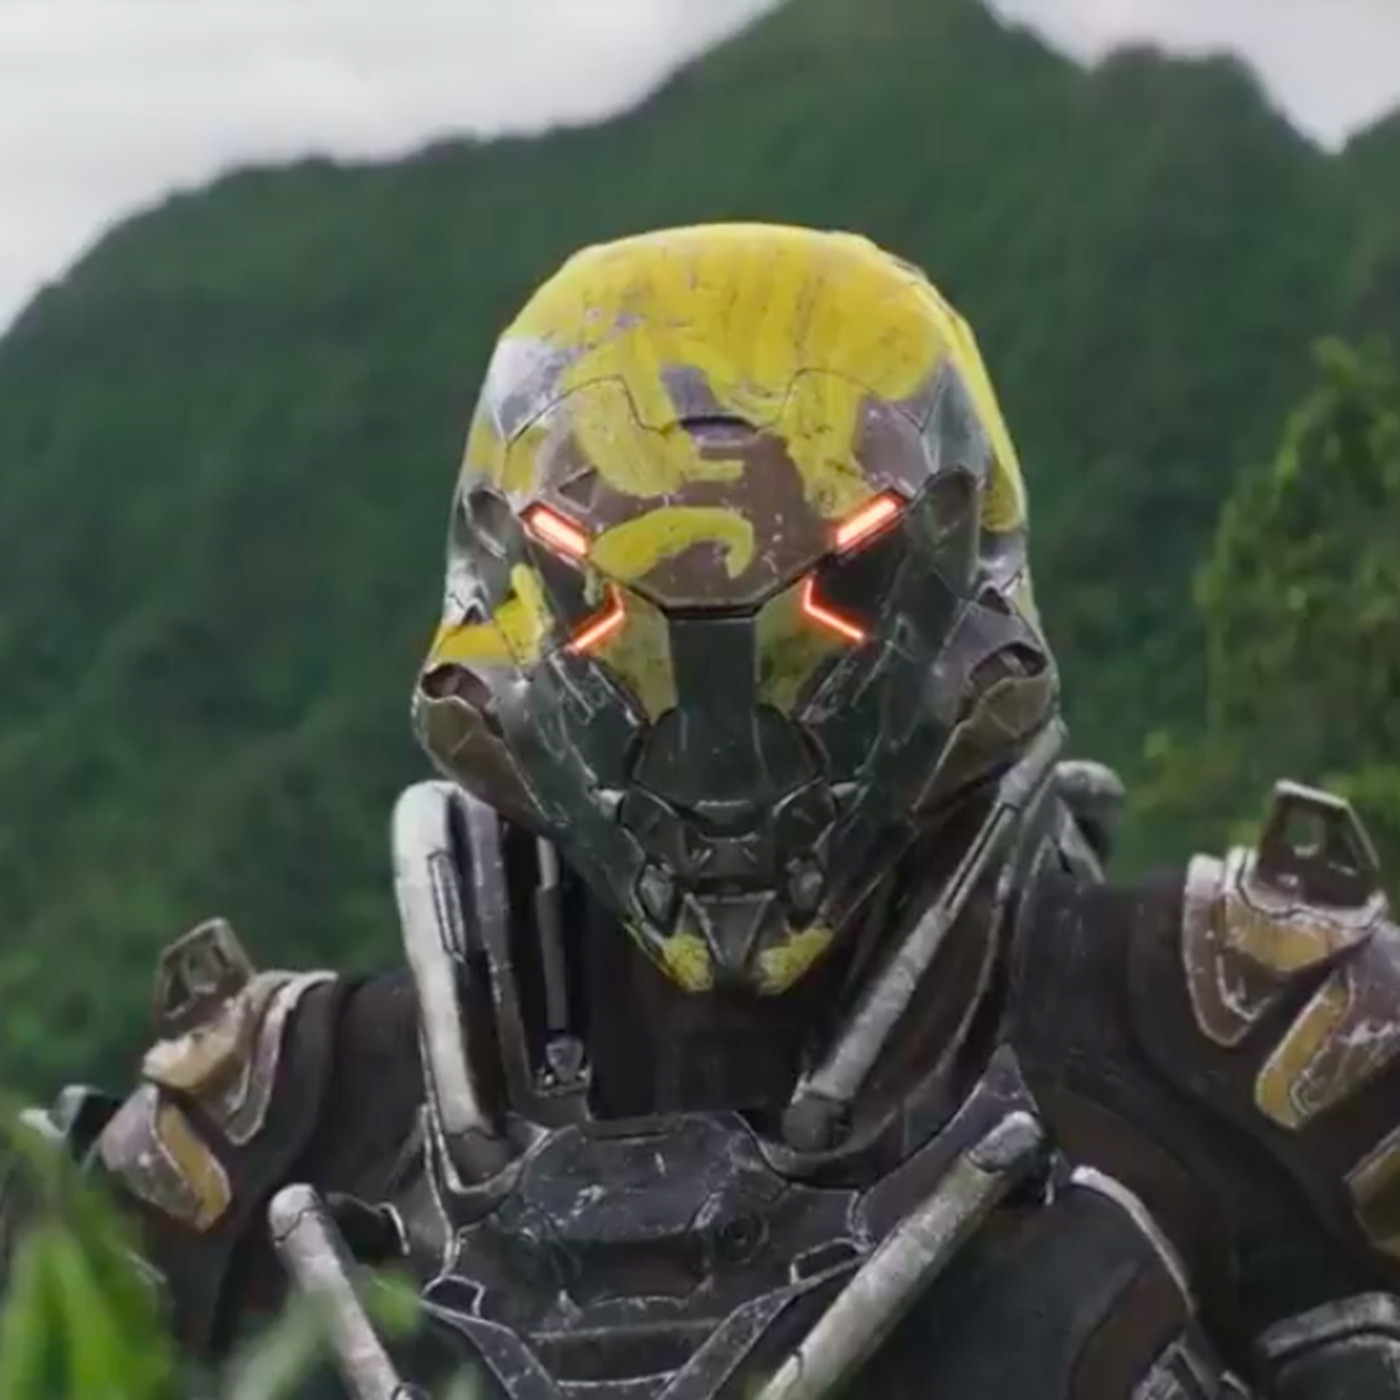 Neill Blomkamp S Oats Studios Released A Live Action Anthem Short